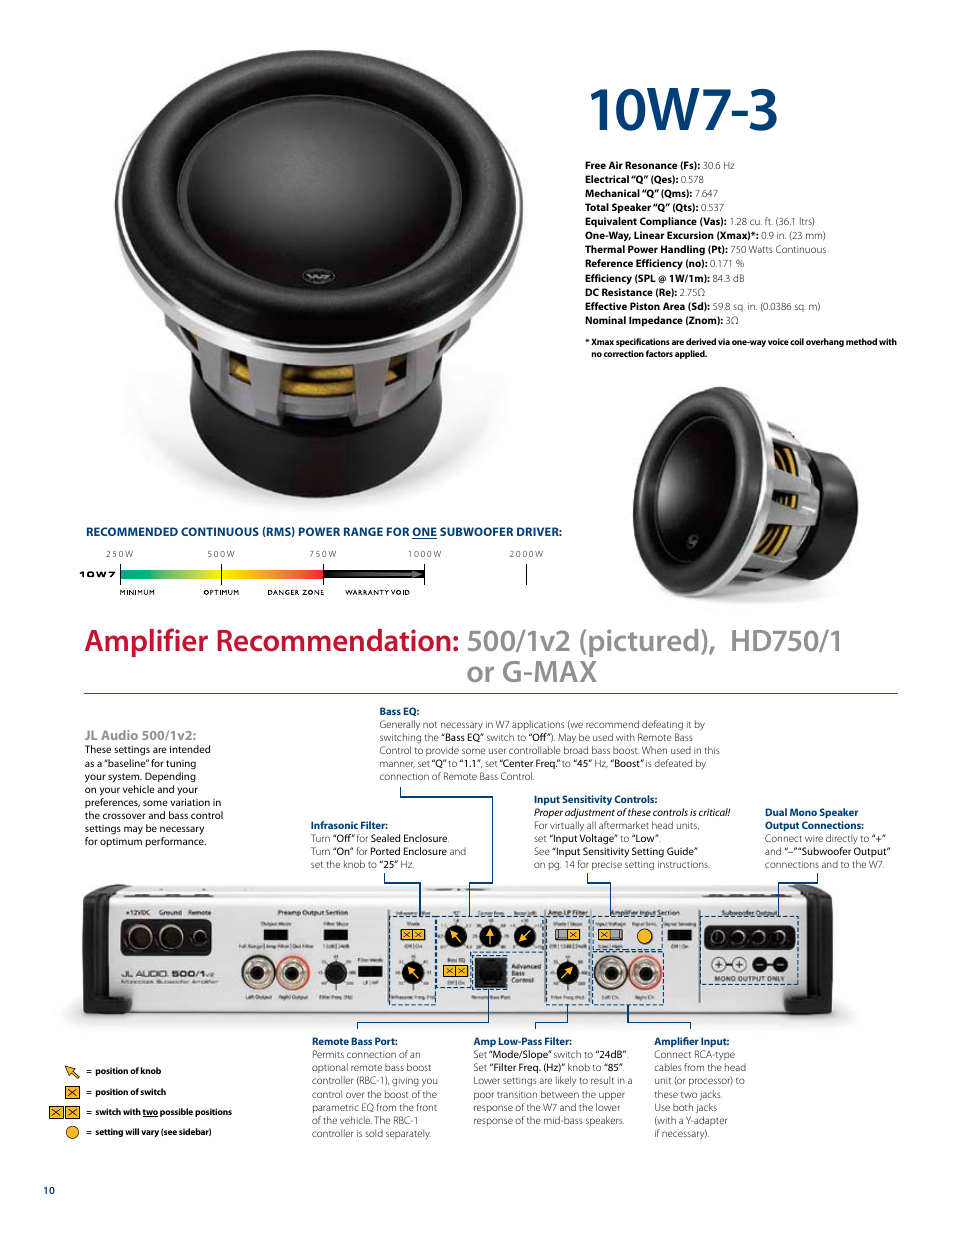 10w7-3 | JL Audio W7 User Manual | Page 10 / 16